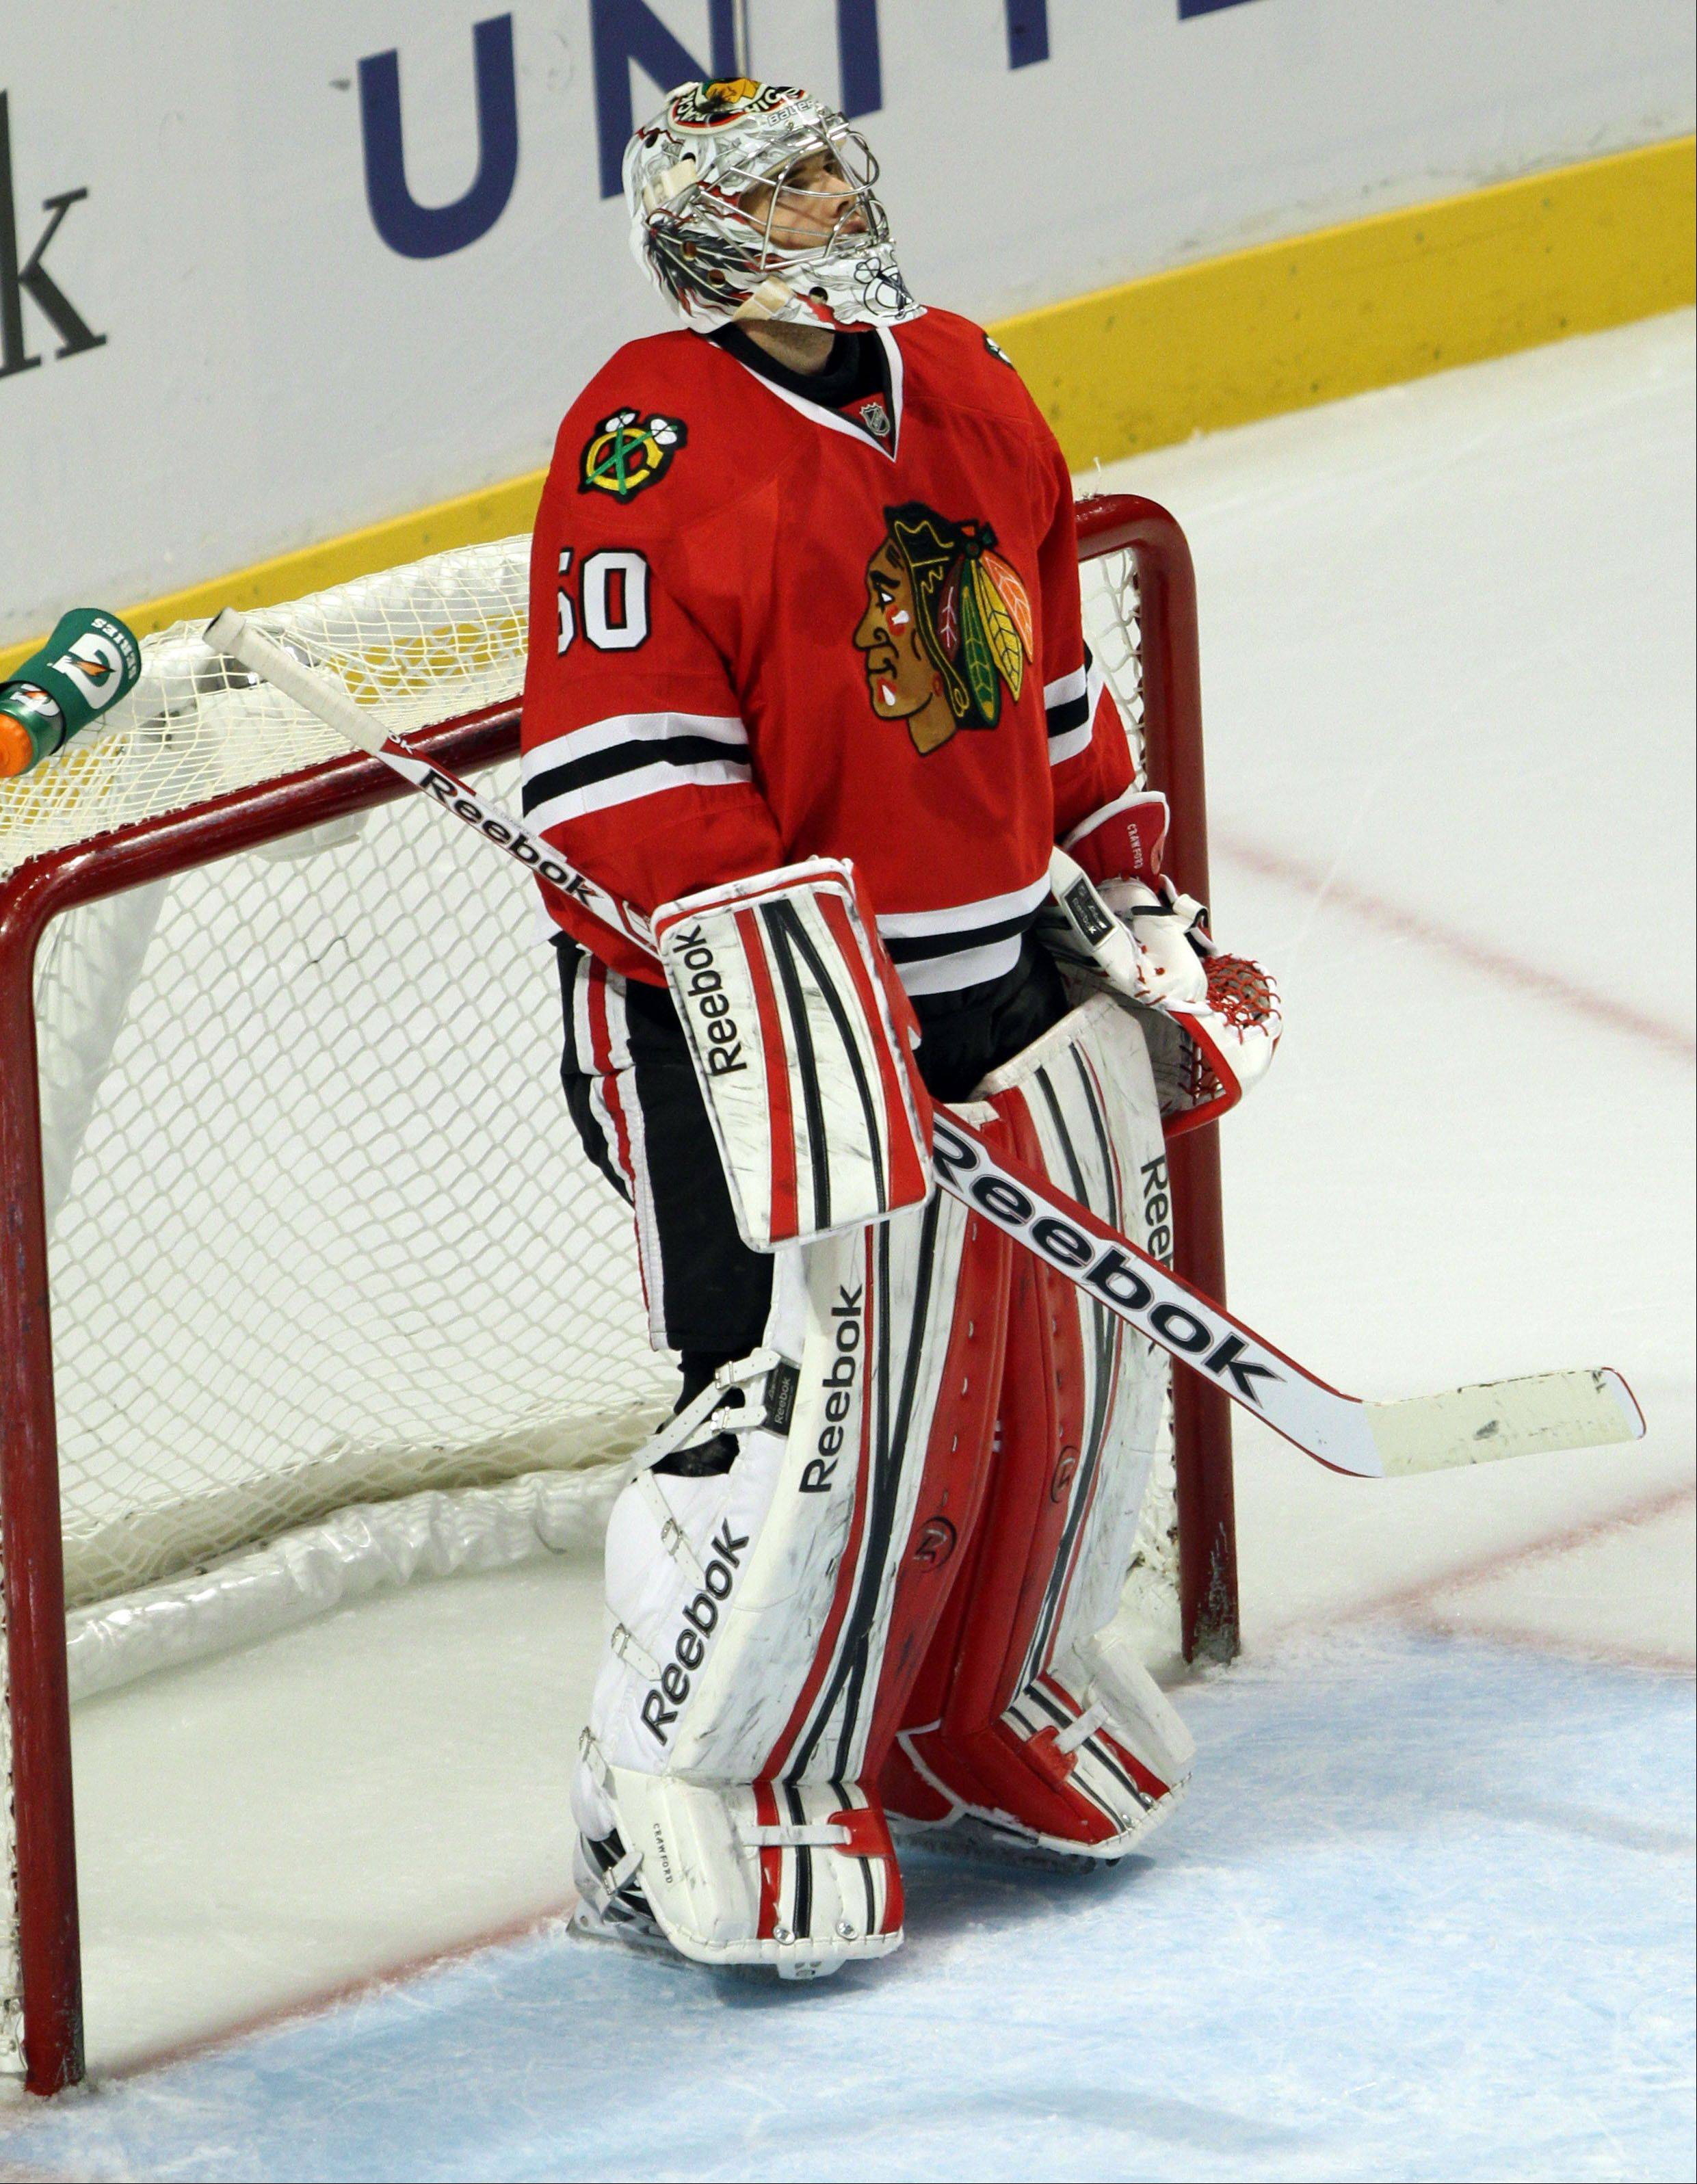 Chicago Blackhawks goalie Corey Crawford looks to the scoreboard after letting in a goal in the 2nd period during their 6-5 loss to the Edmonton Oilers Sunday night at the United Center in Chicago.